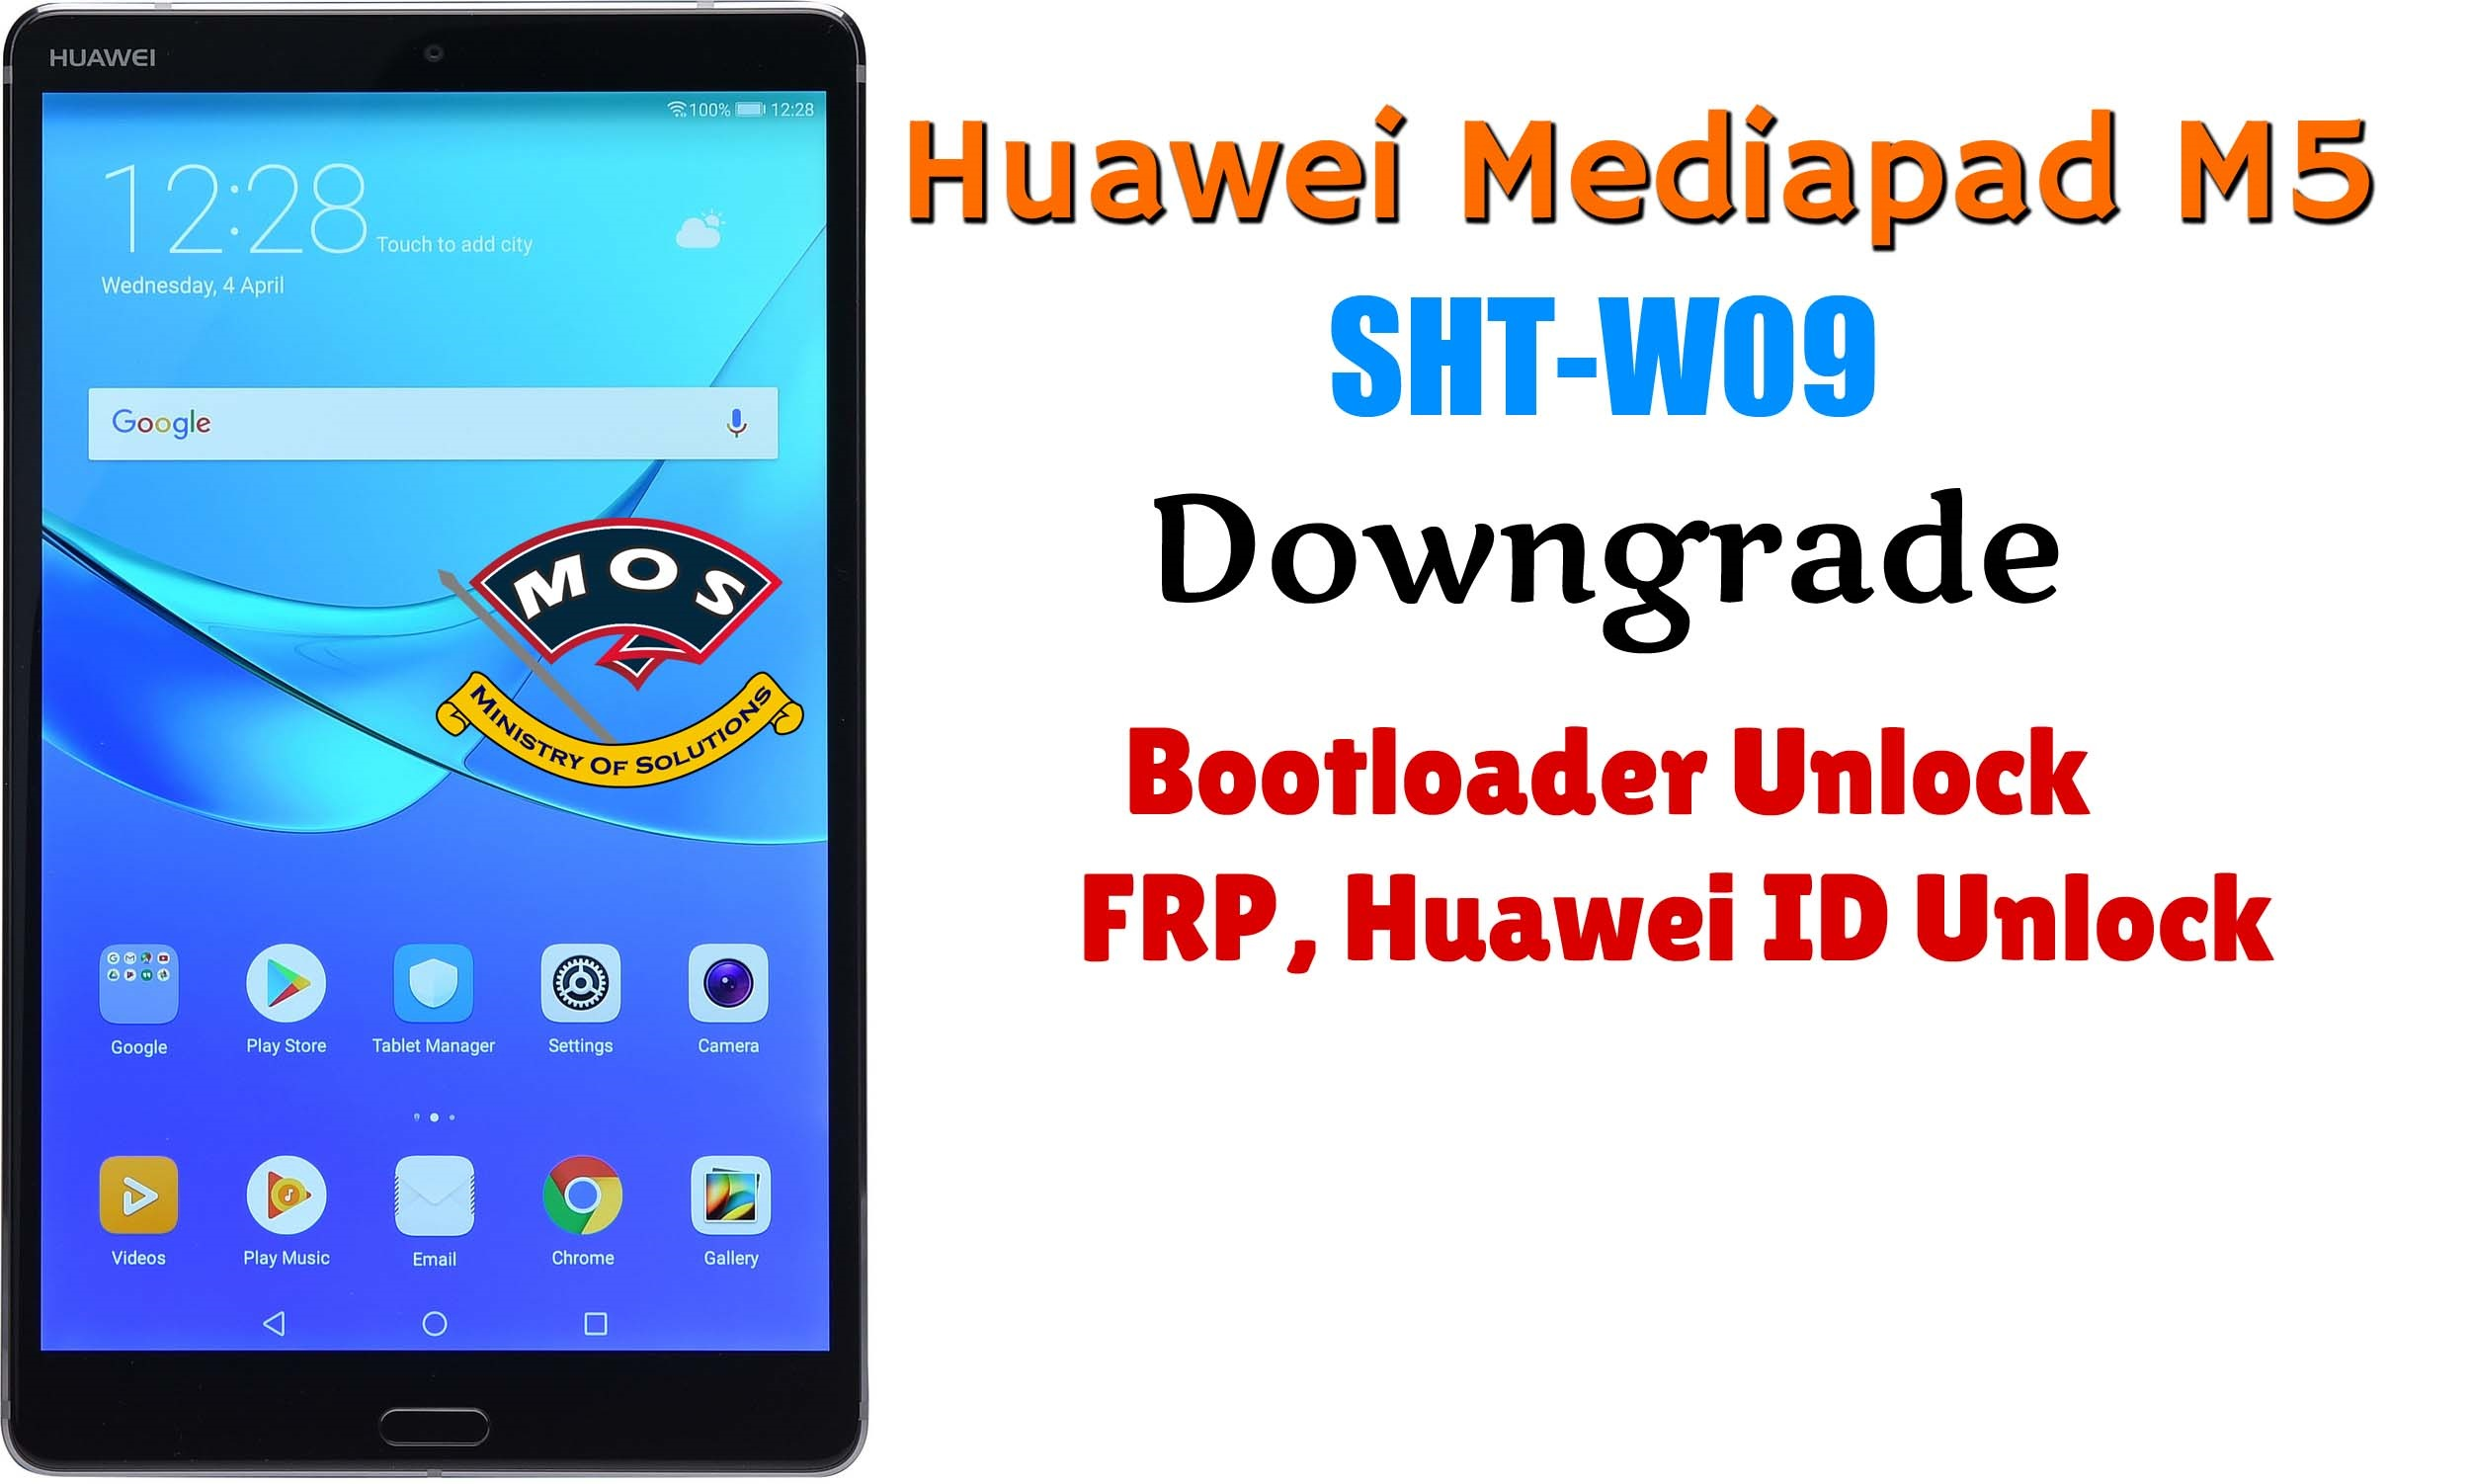 Huawei Mediapad M5 SHT-W09 Downgrade - Ministry Of Solutions